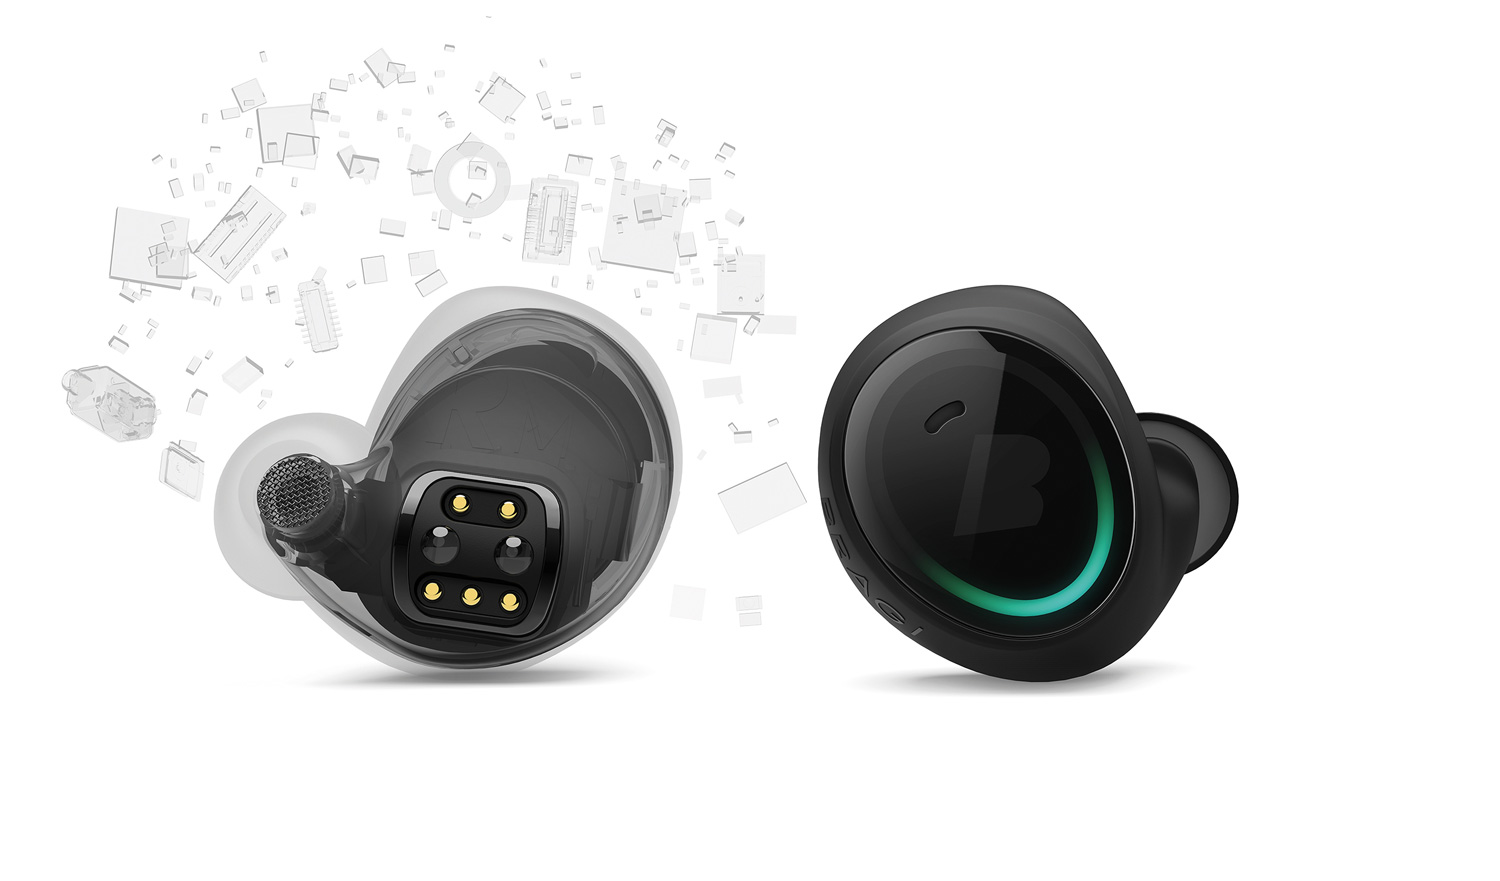 Black Bragi wireless headphones